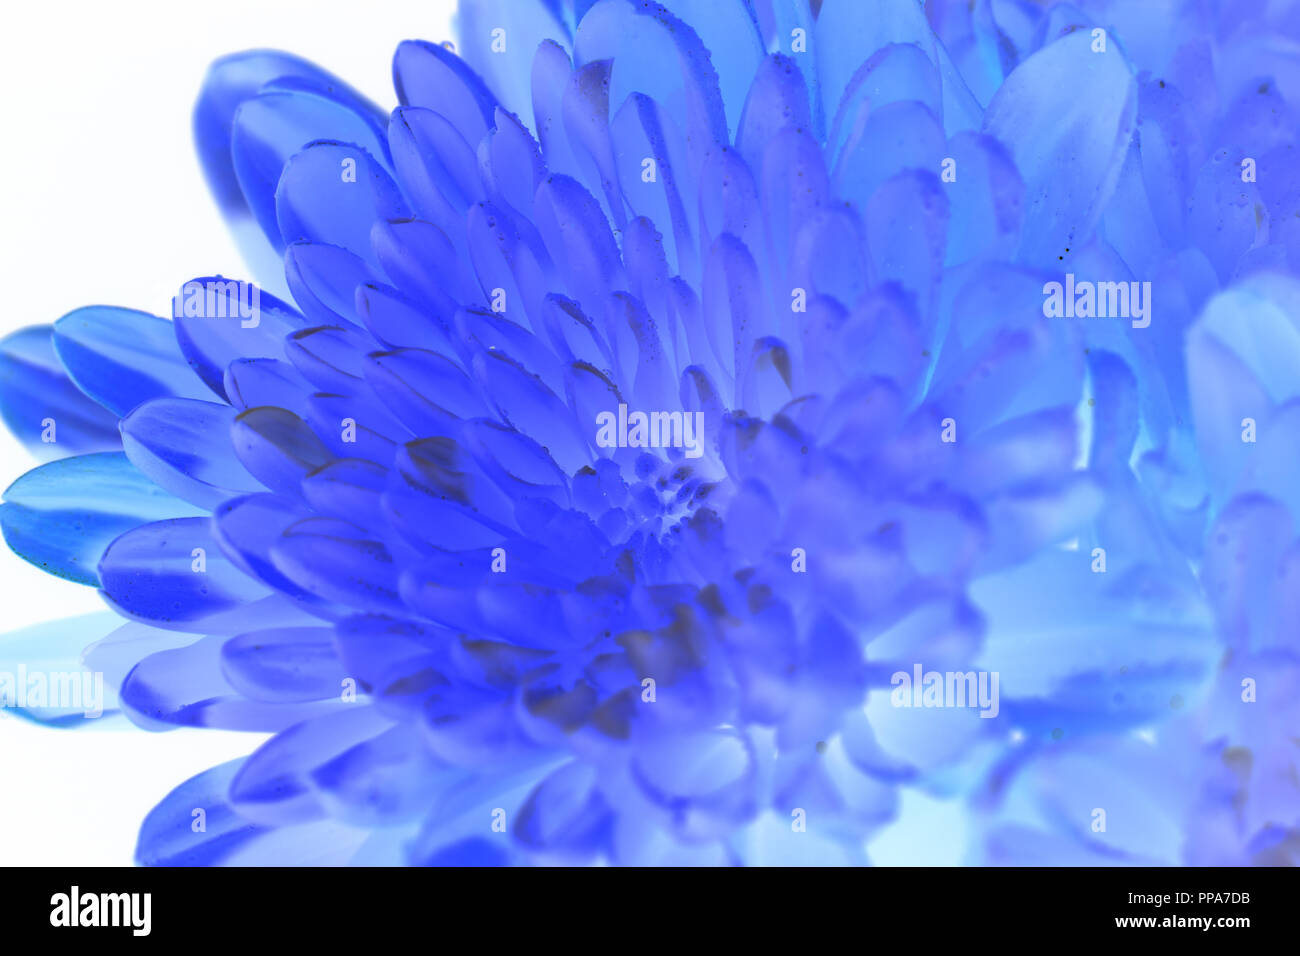 A beautiful flower using an inverted manipulation filter. - Stock Image